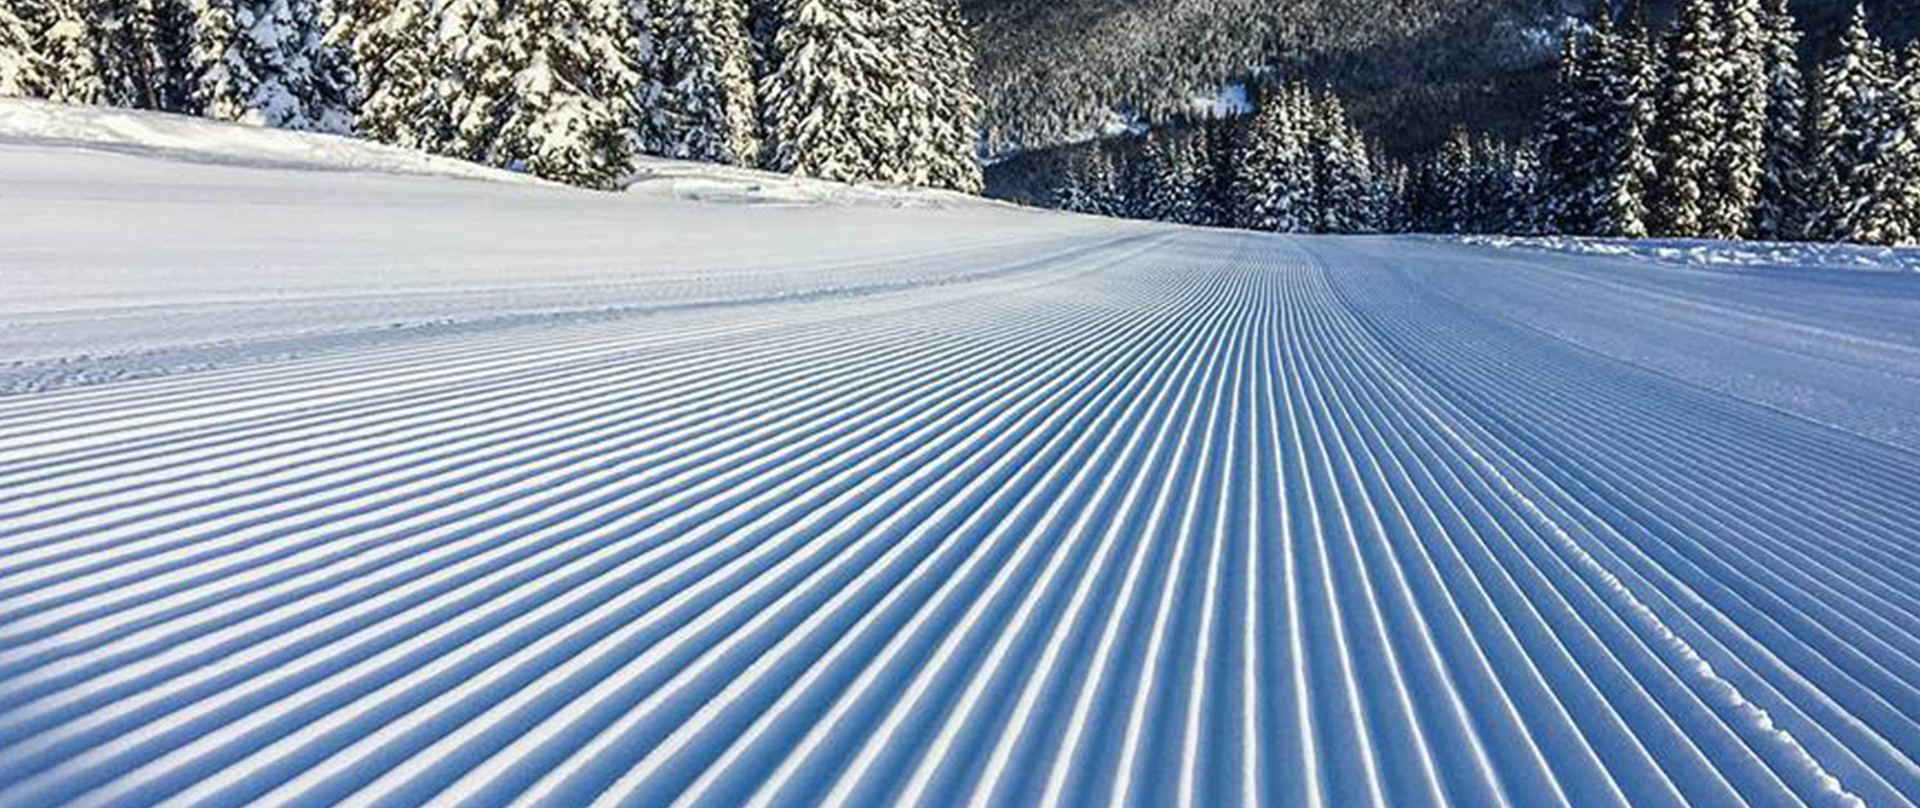 soft corduroy snow surface